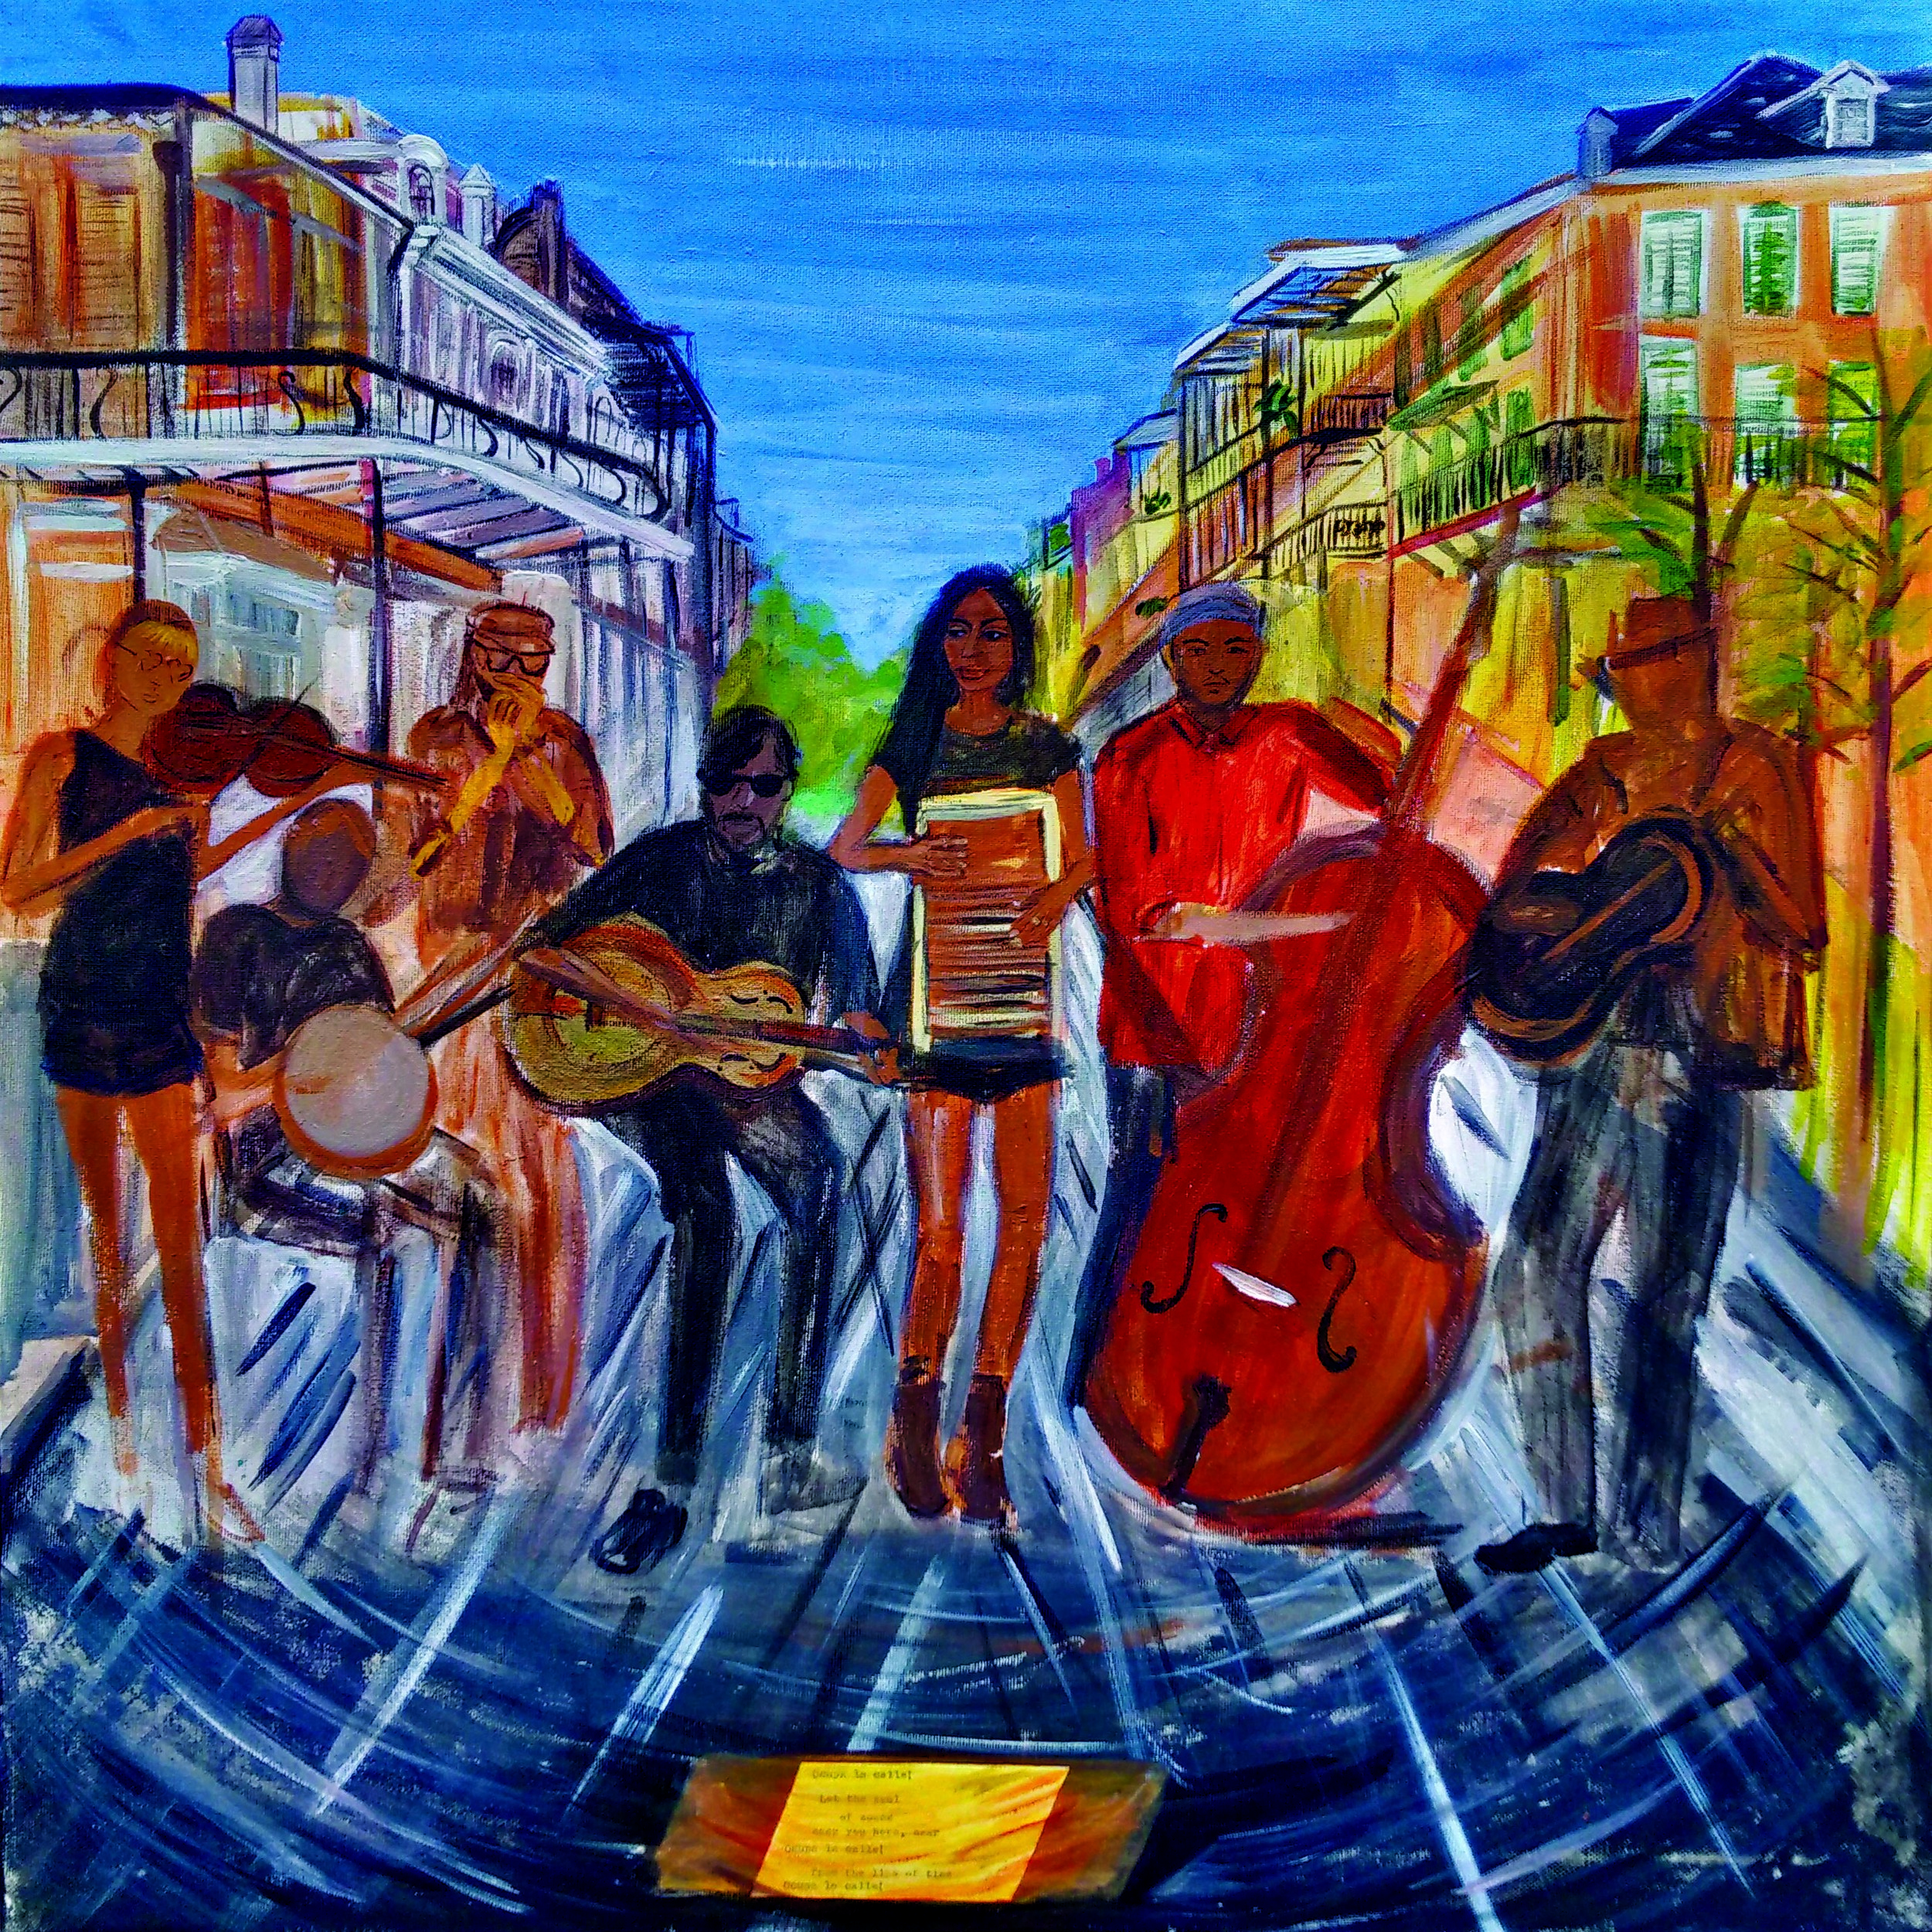 "Occupa La Calle! Let the soul of sound keep you hear, near. Occupa La Calle! From the lips of time! Occupa la Calle! ---cubs the poet. Yes ma'am band occupying royal street with music. Viva la revolution    private collection   20"" x 20"" Giclee on stretched canvas, hand embellished...$150  14"" x 14"" giclee on 16"" x 16"" watercolor paper... $40"